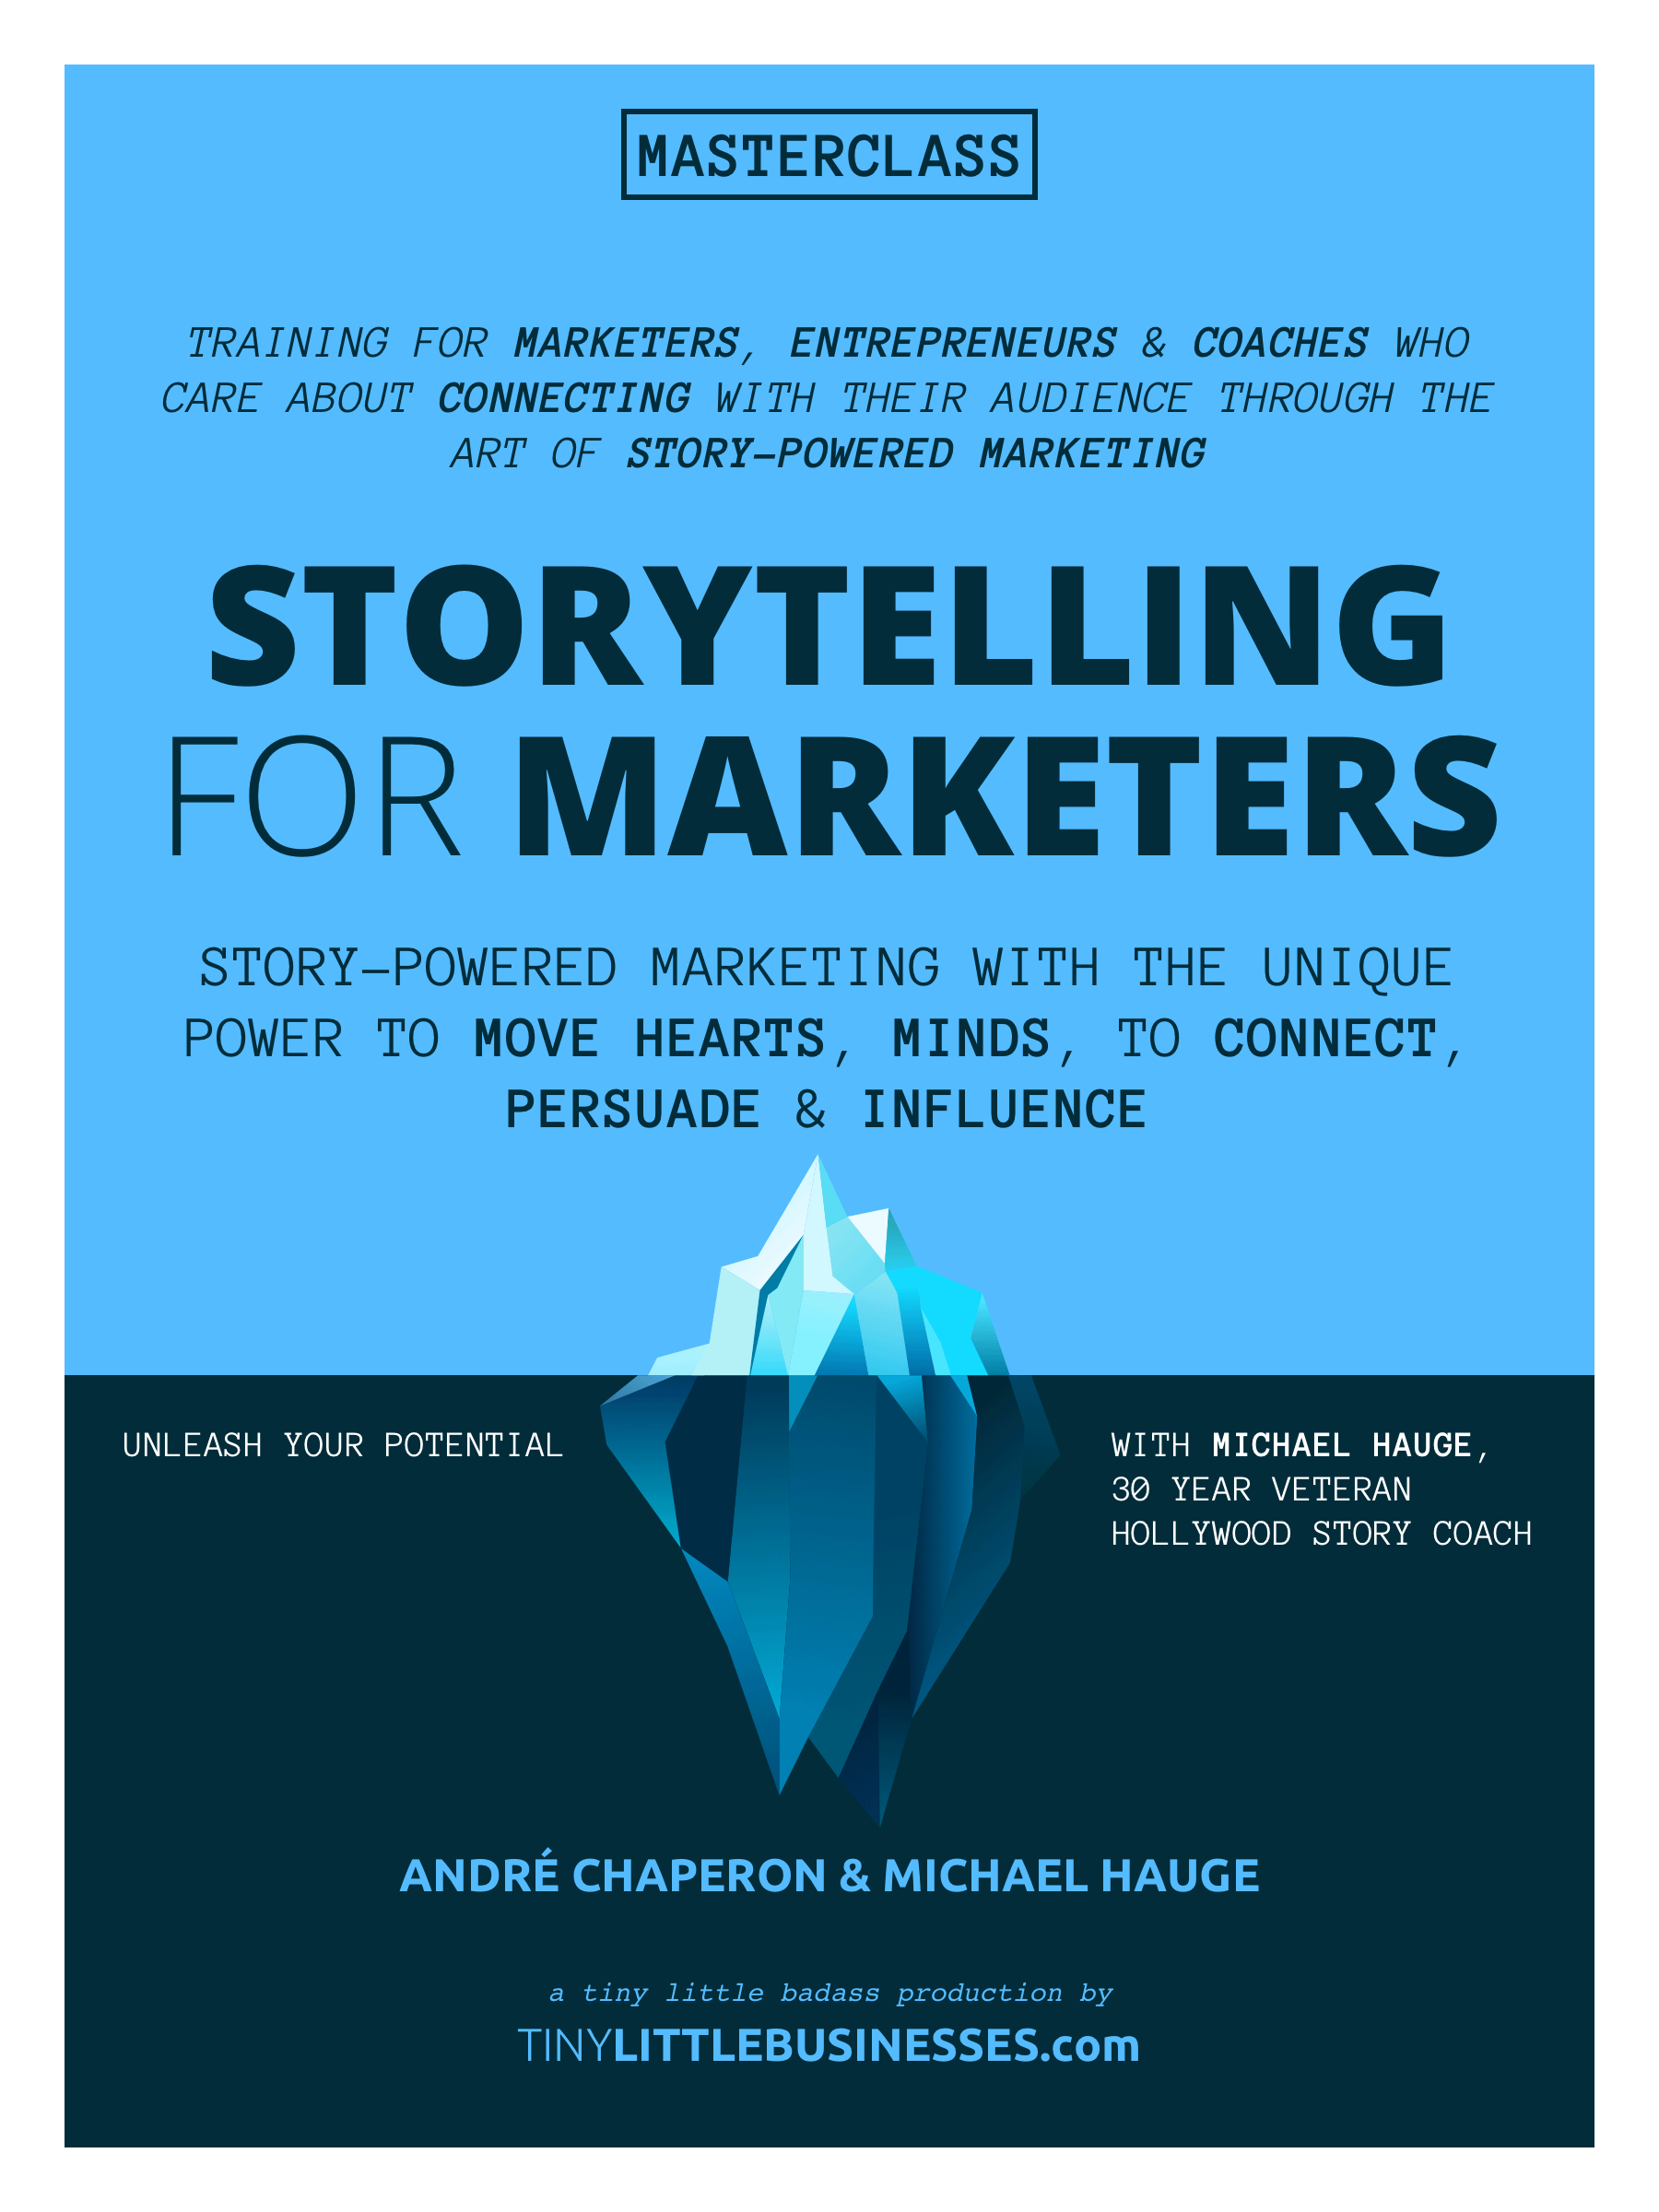 Storytelling for Marketers (Story-Powered Marketing)